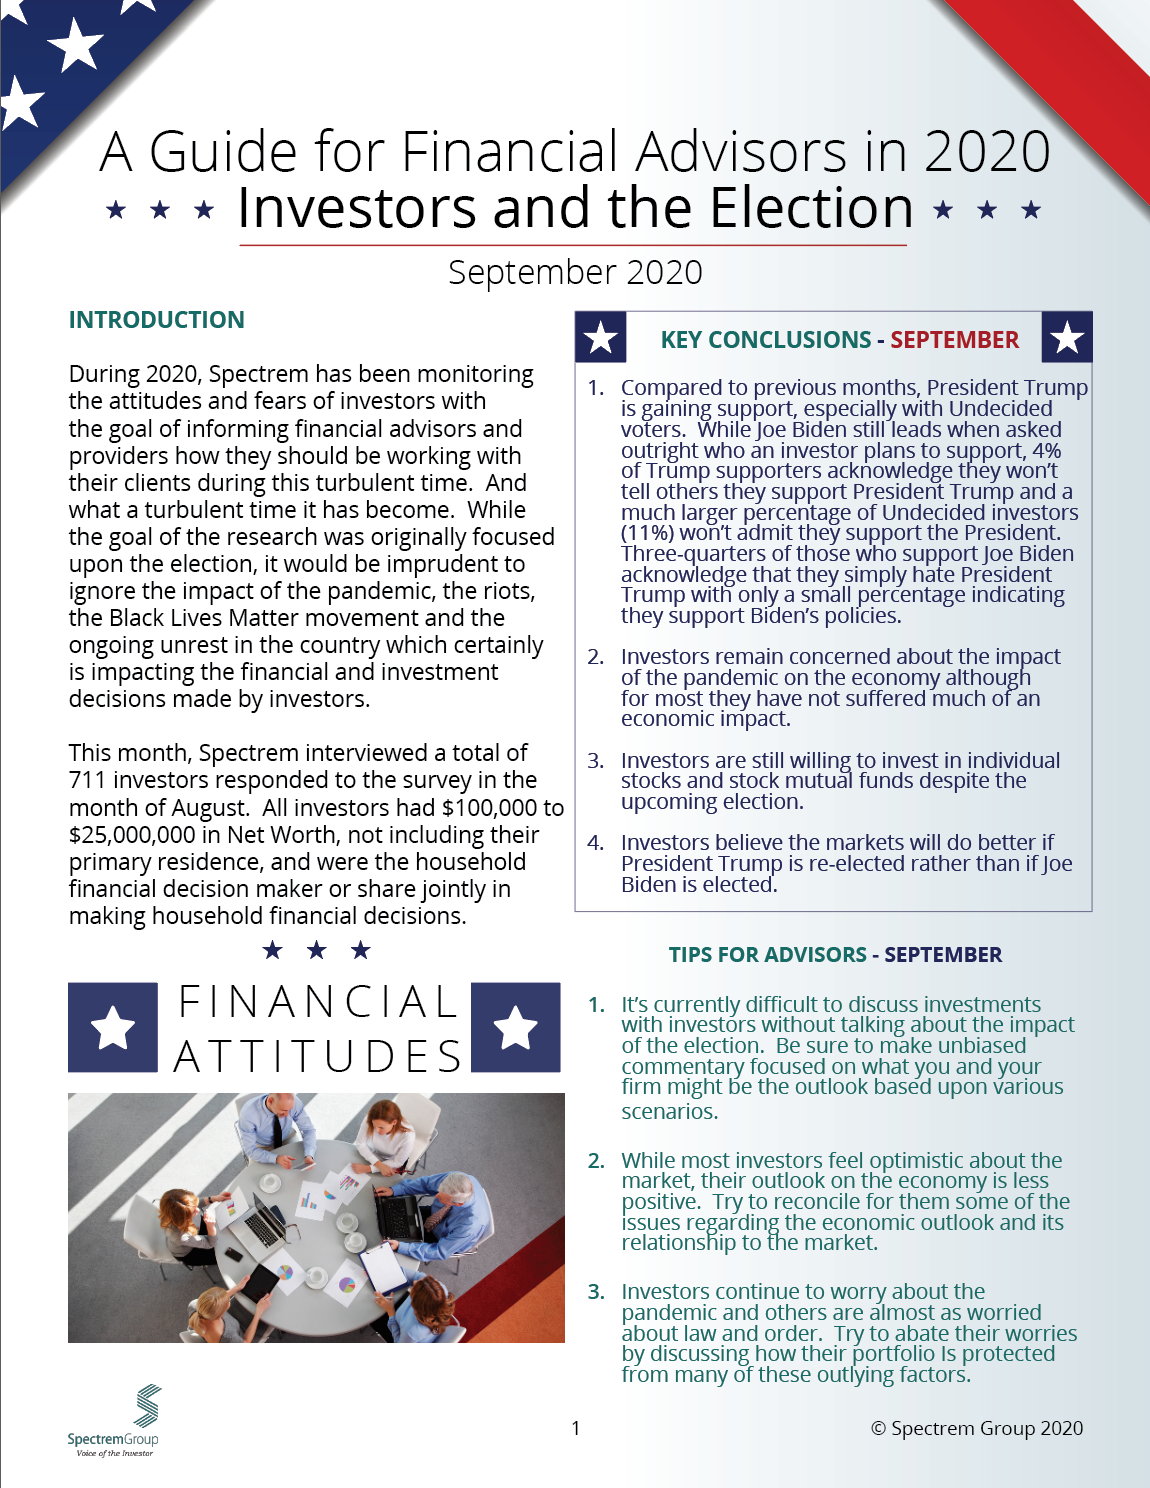 Wealthy Investors and the Election: A Guide for Financial Advisors in 2020 - September